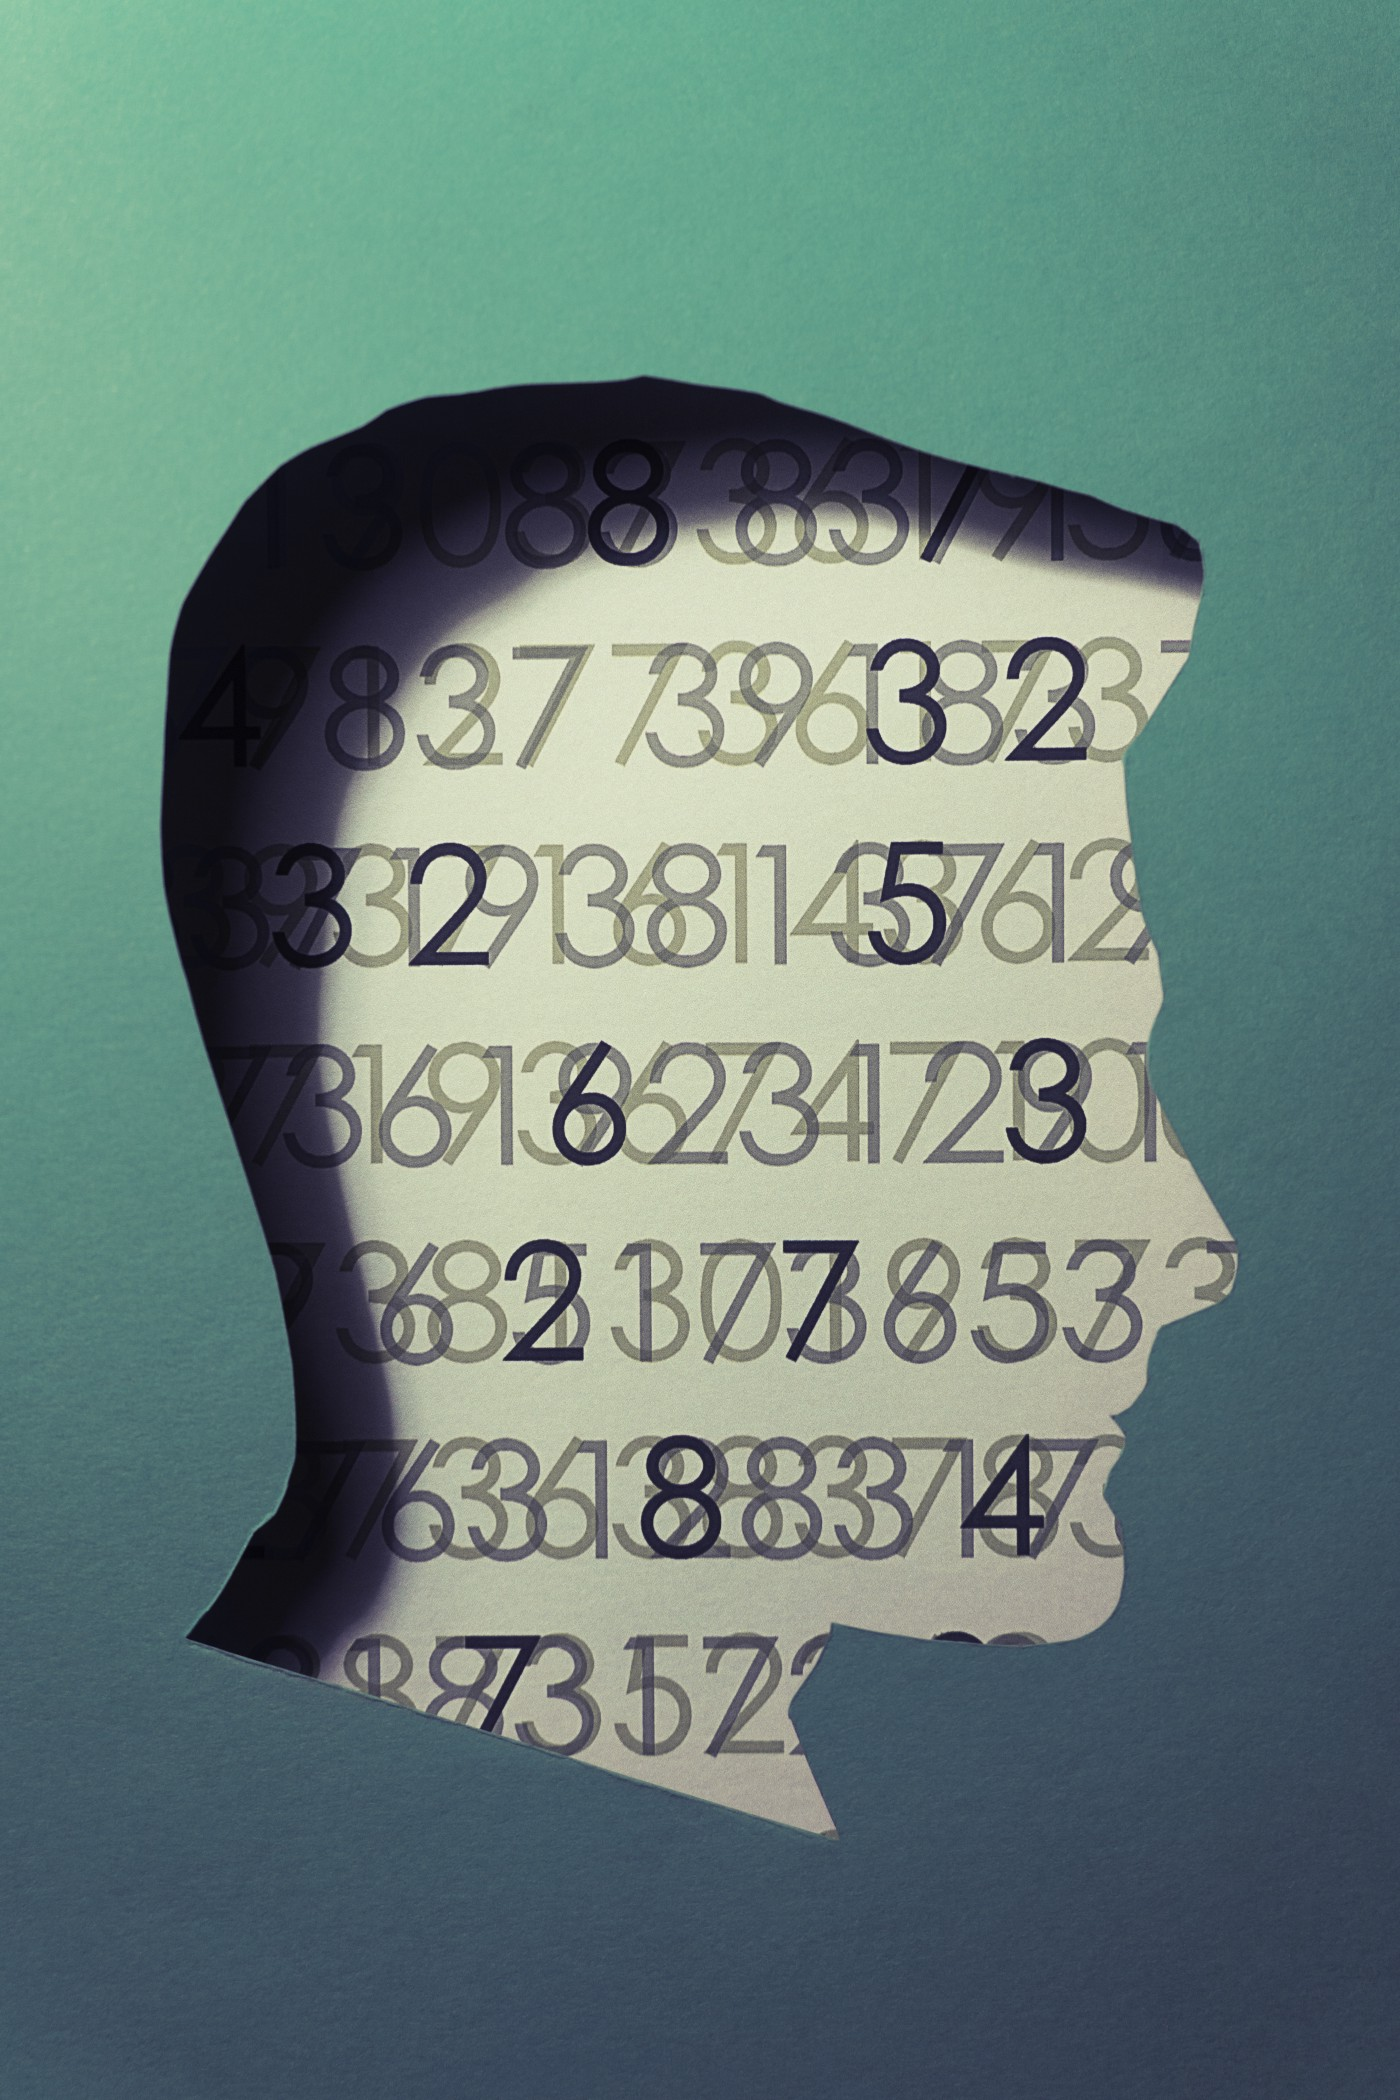 A cut out illustration of a human head with an abstract code background.